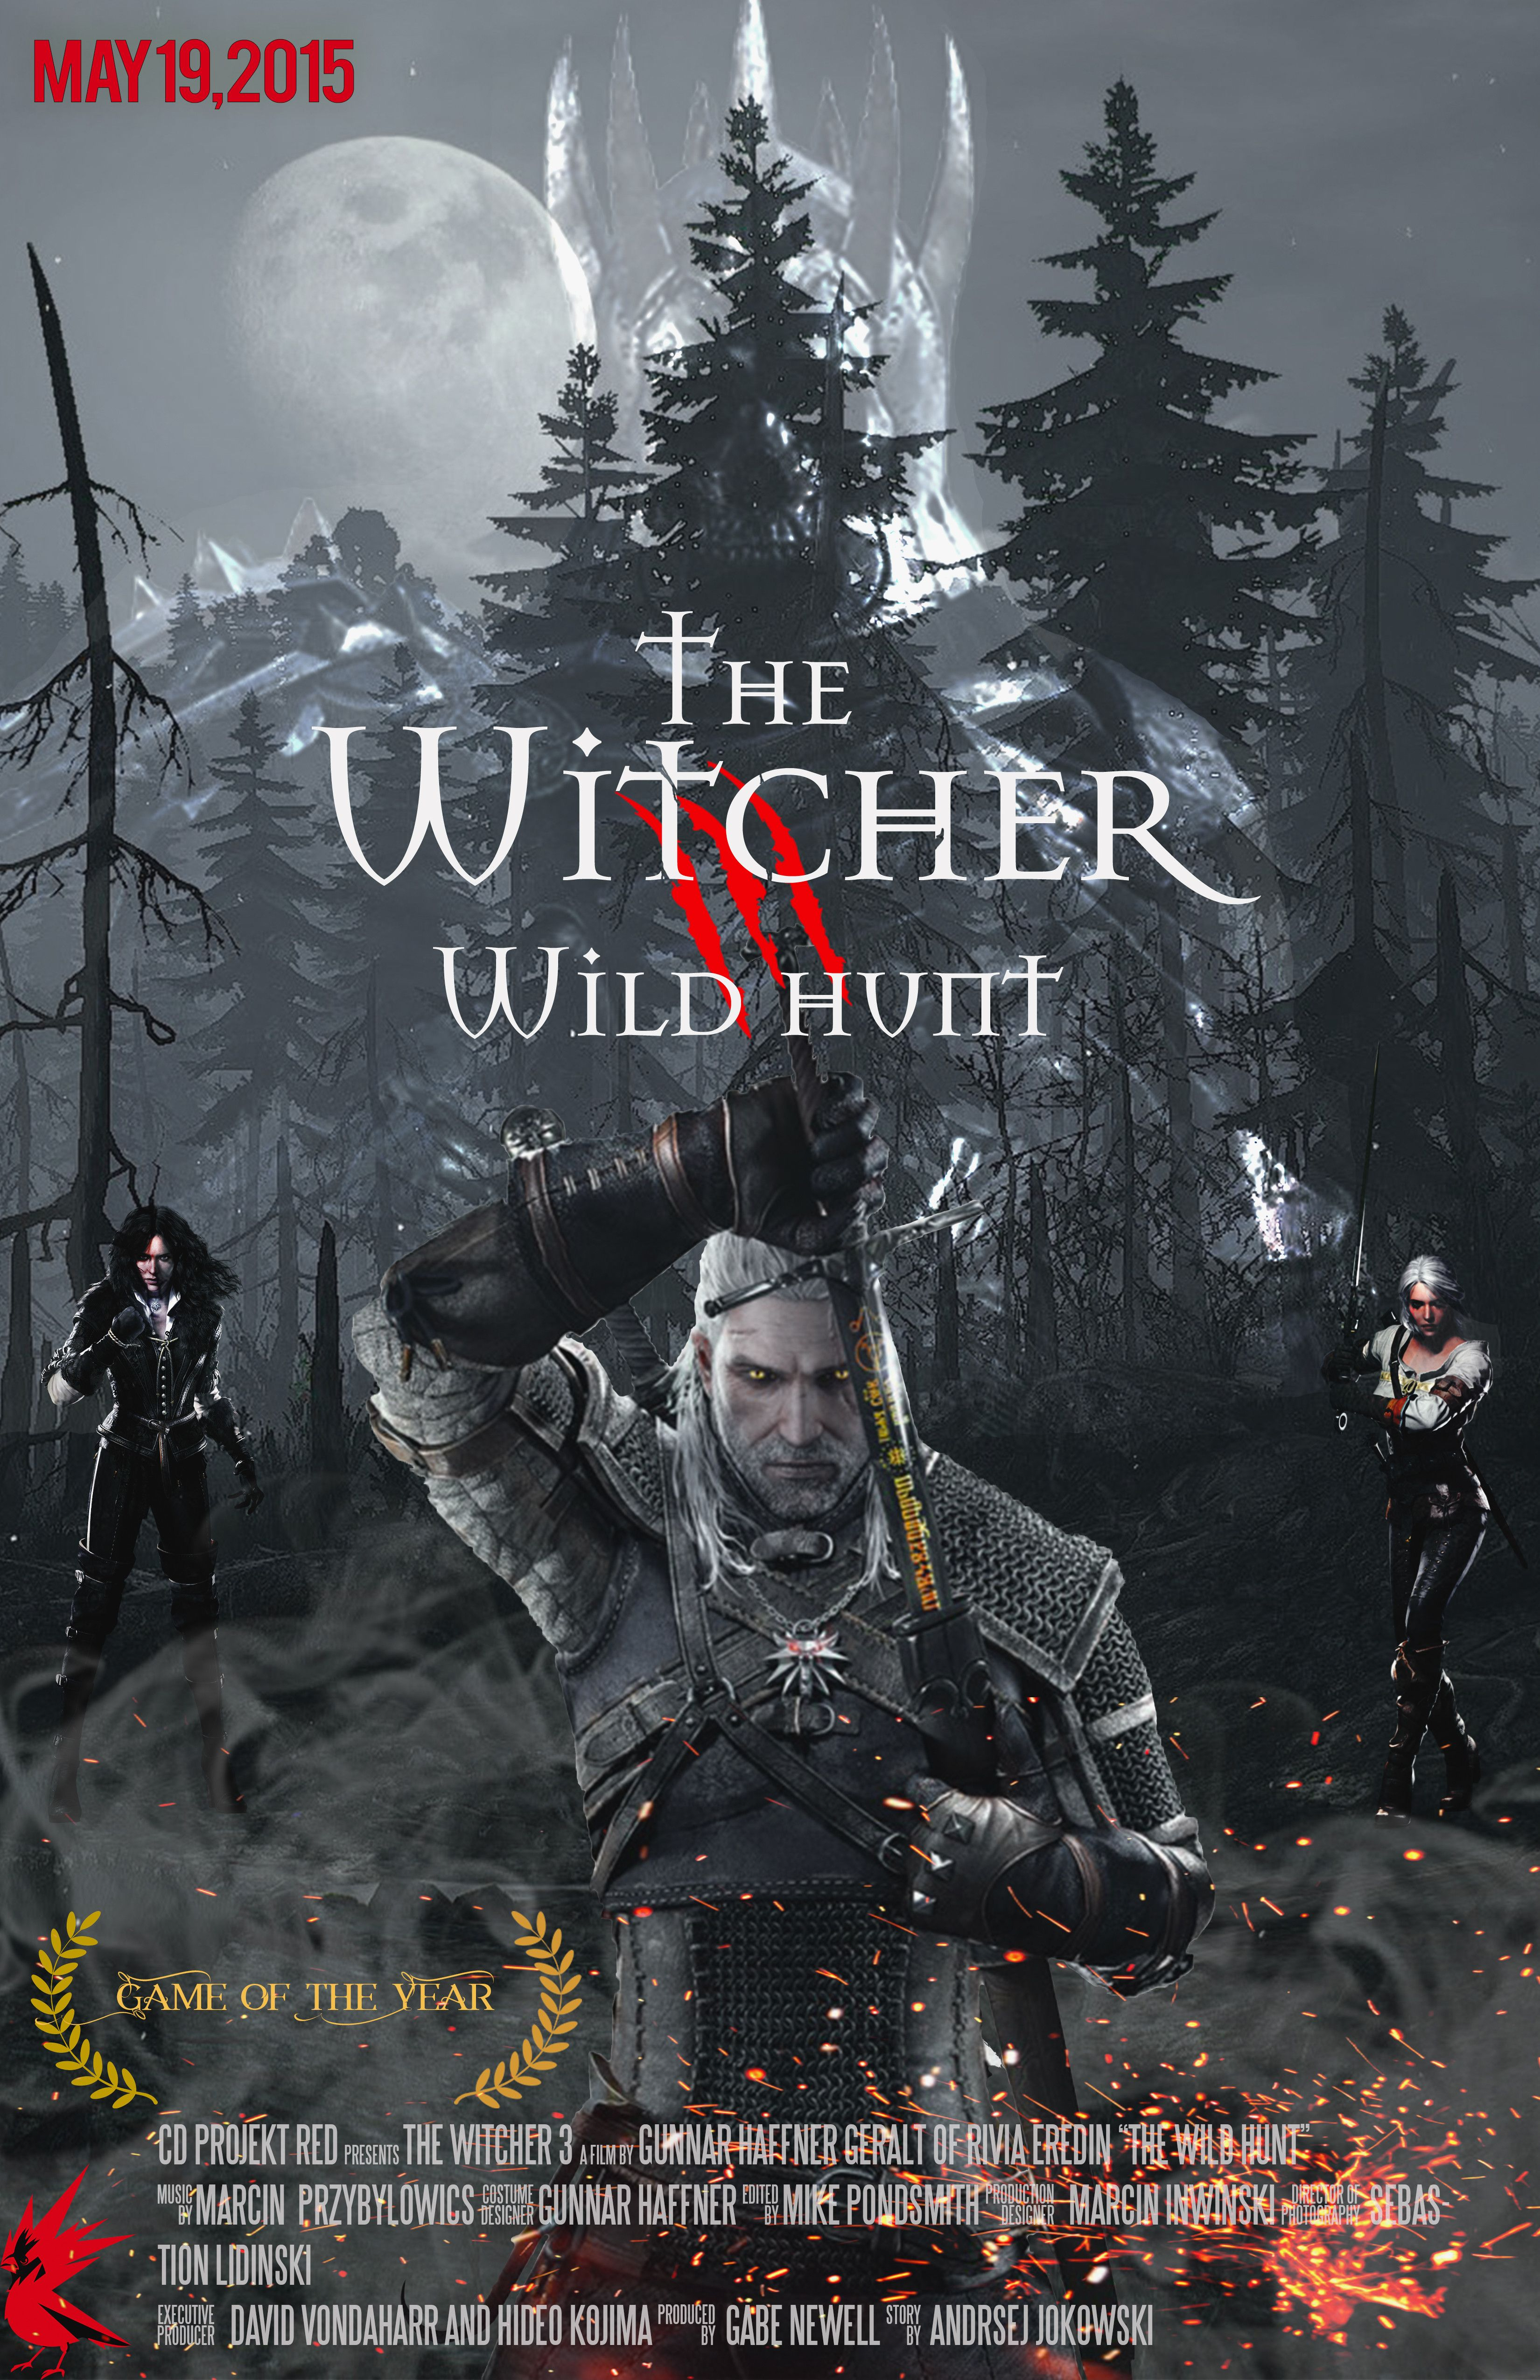 Fan Made Witcher Poster TheWitcher3 PS4 WILDHUNT PS4share Games Gaming TheWitcher TheWitcher3WildHunt